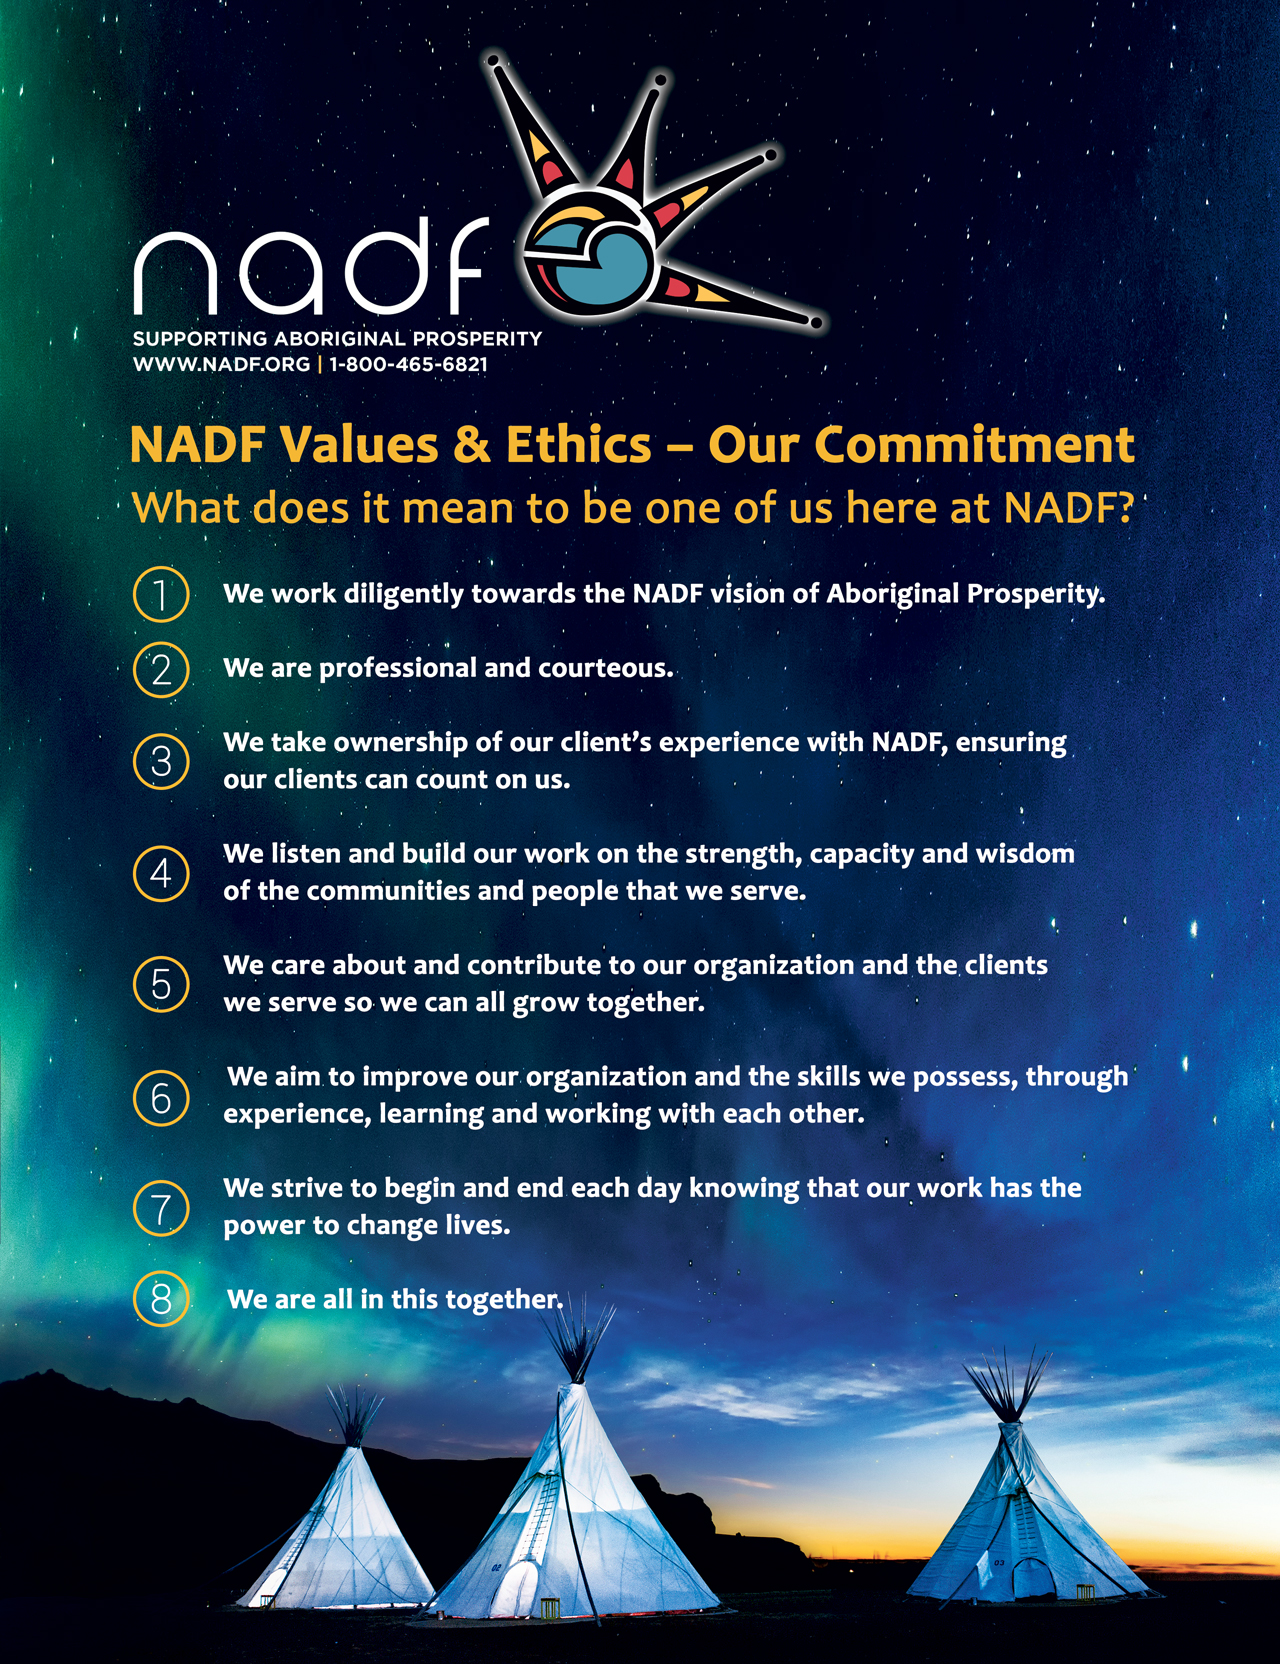 NADF Values & Ethics Poster